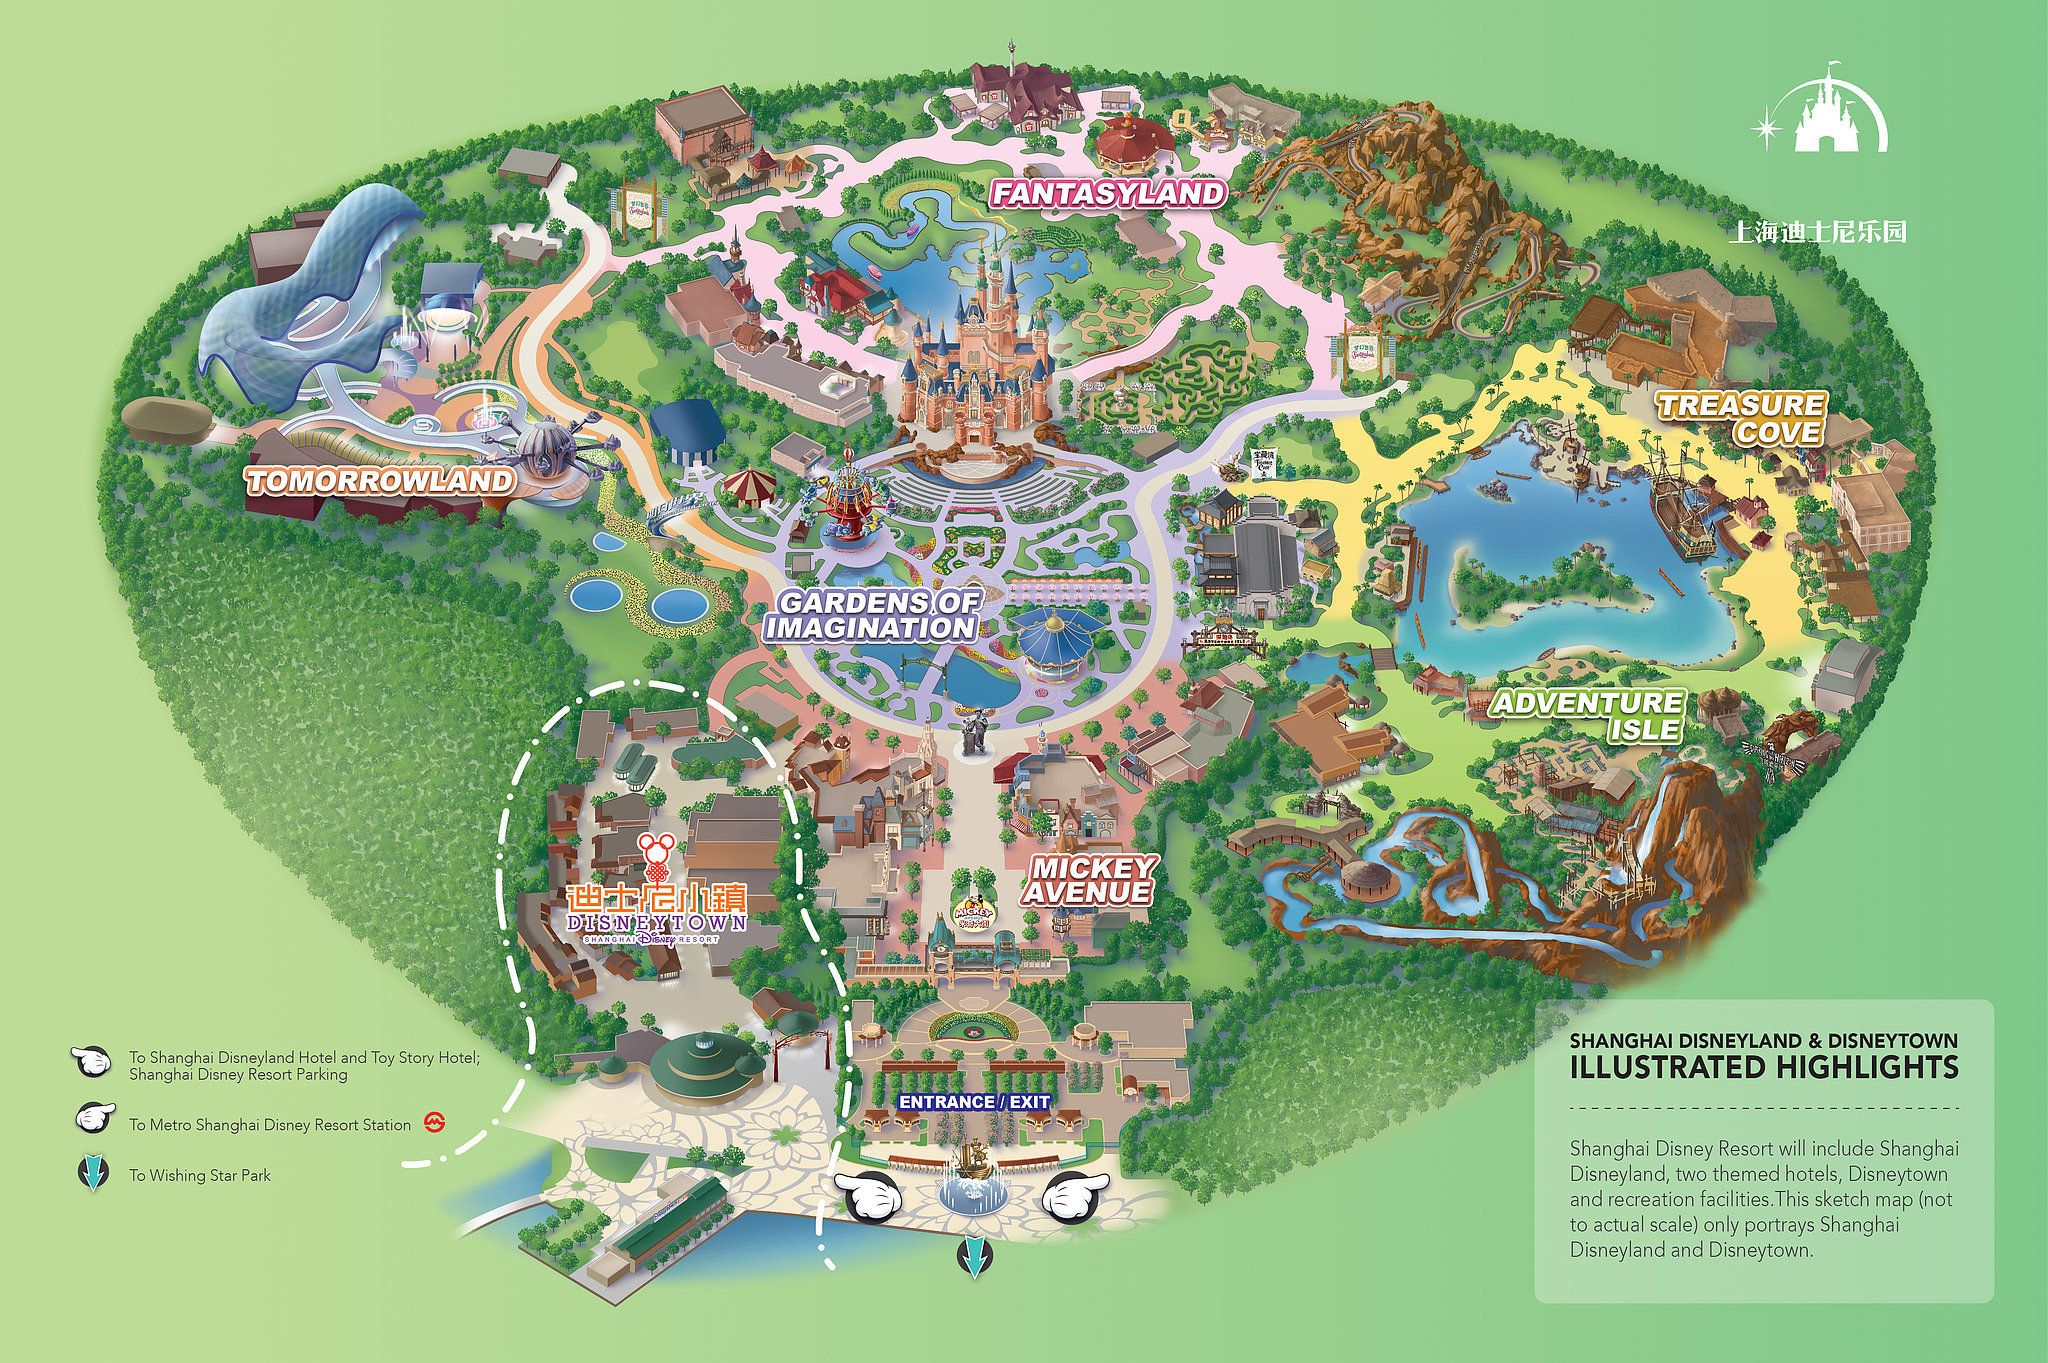 Map Of Shanghai Disneyland And Disneytown Shanghai Disneyland